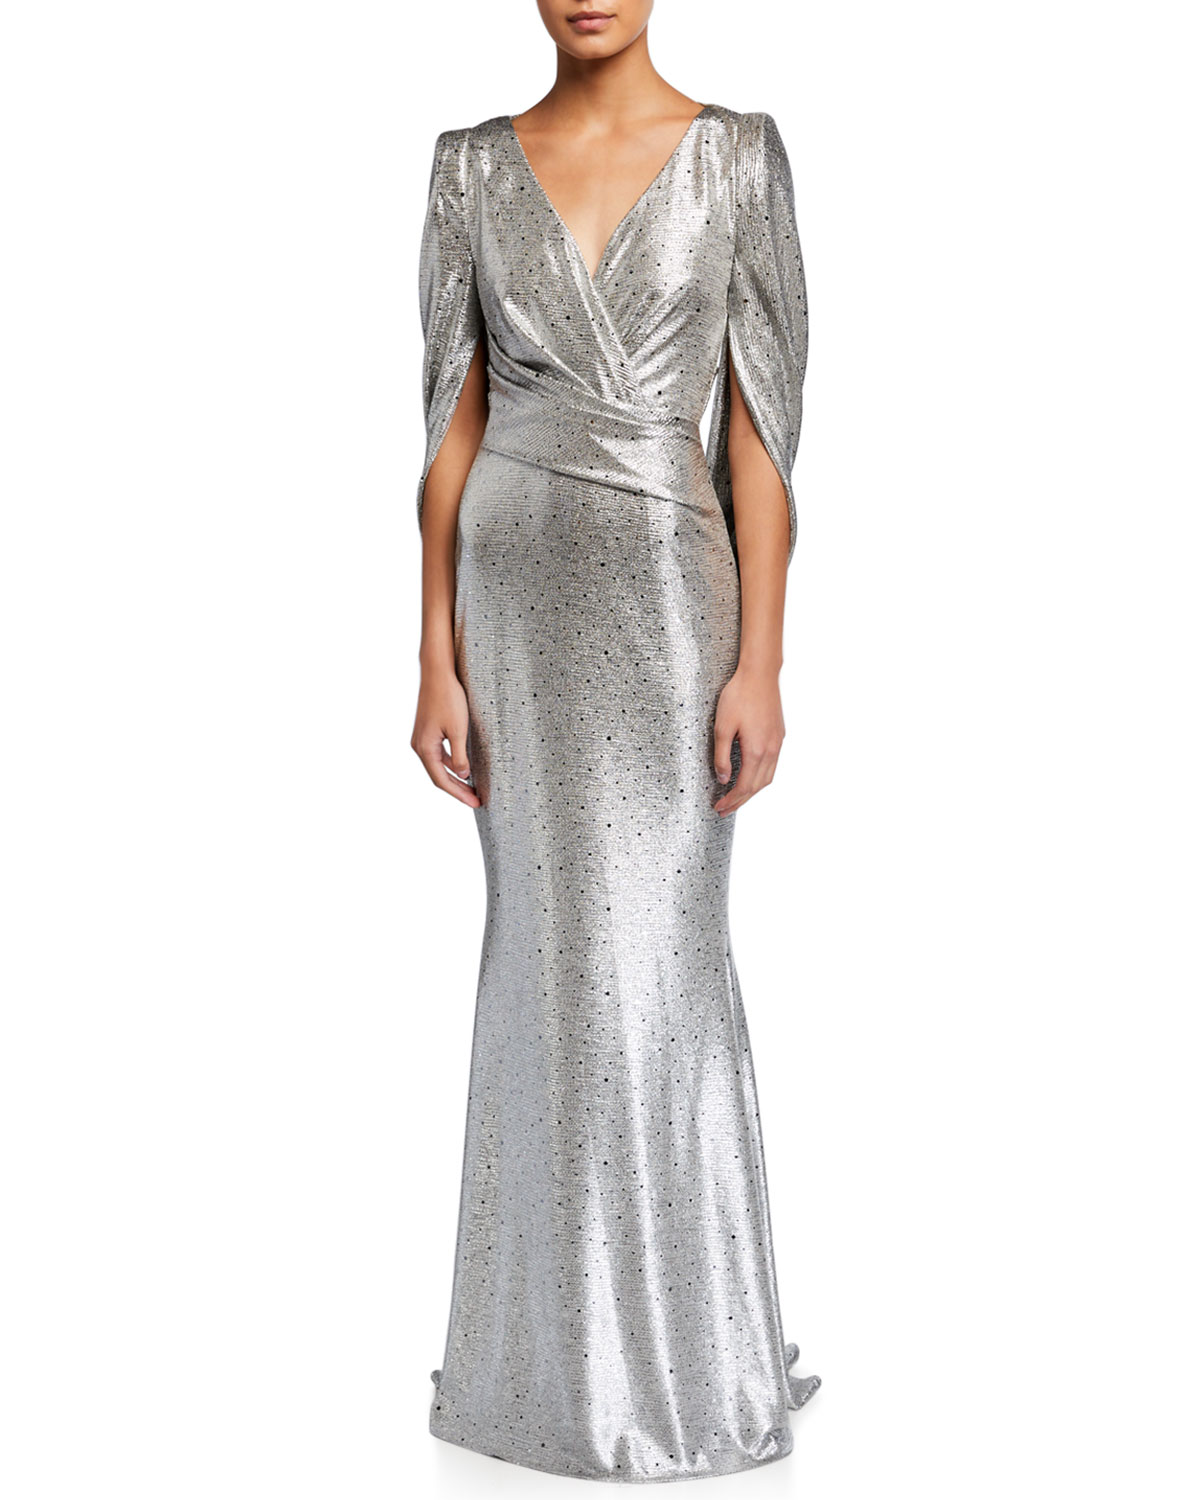 Talbot Runhof Rosin Mirrorball Gathered Stretch Metallic Gown